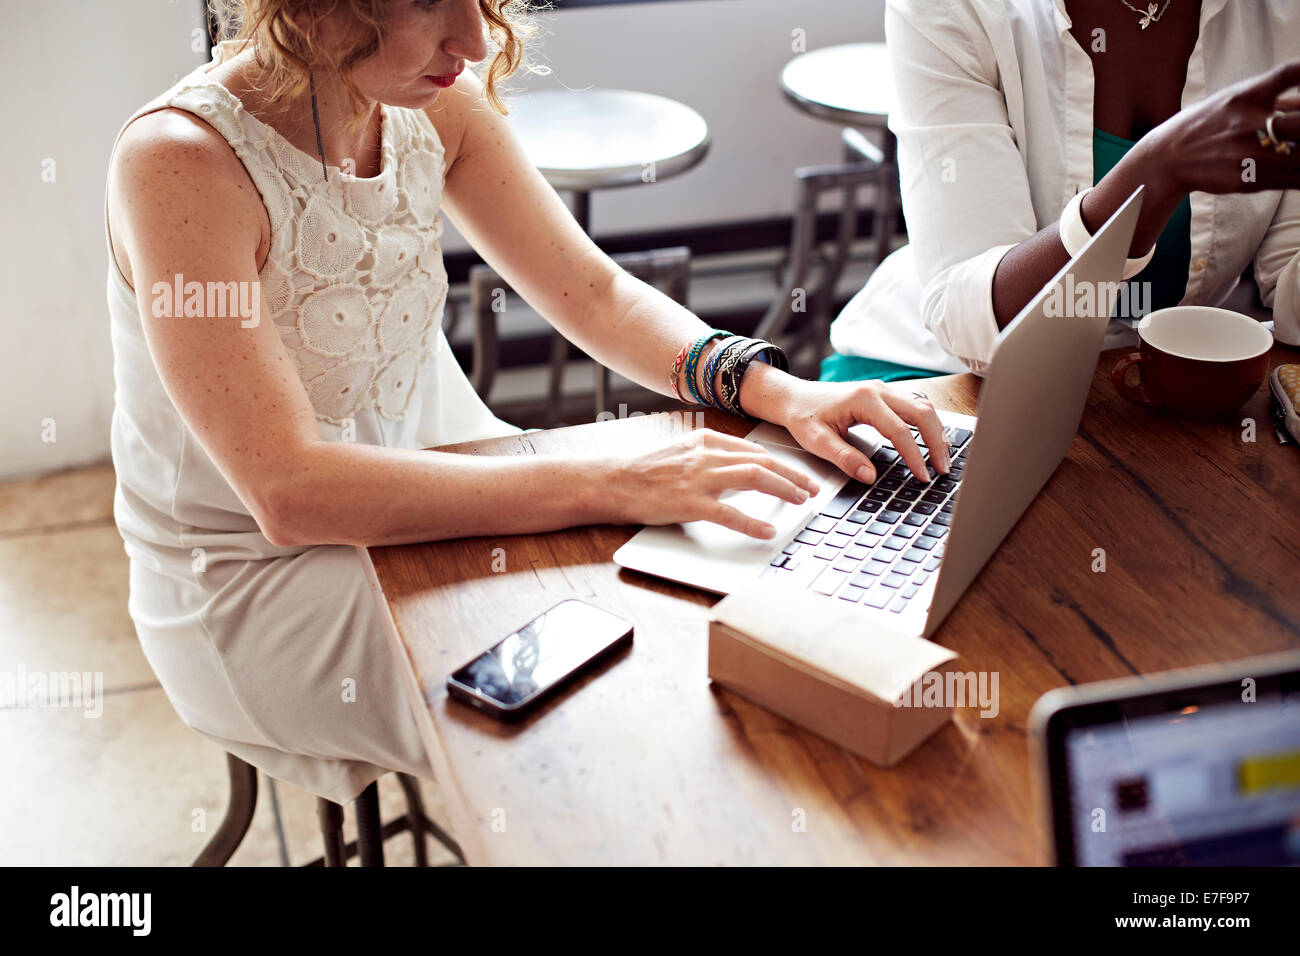 Woman using laptop in cafe Banque D'Images